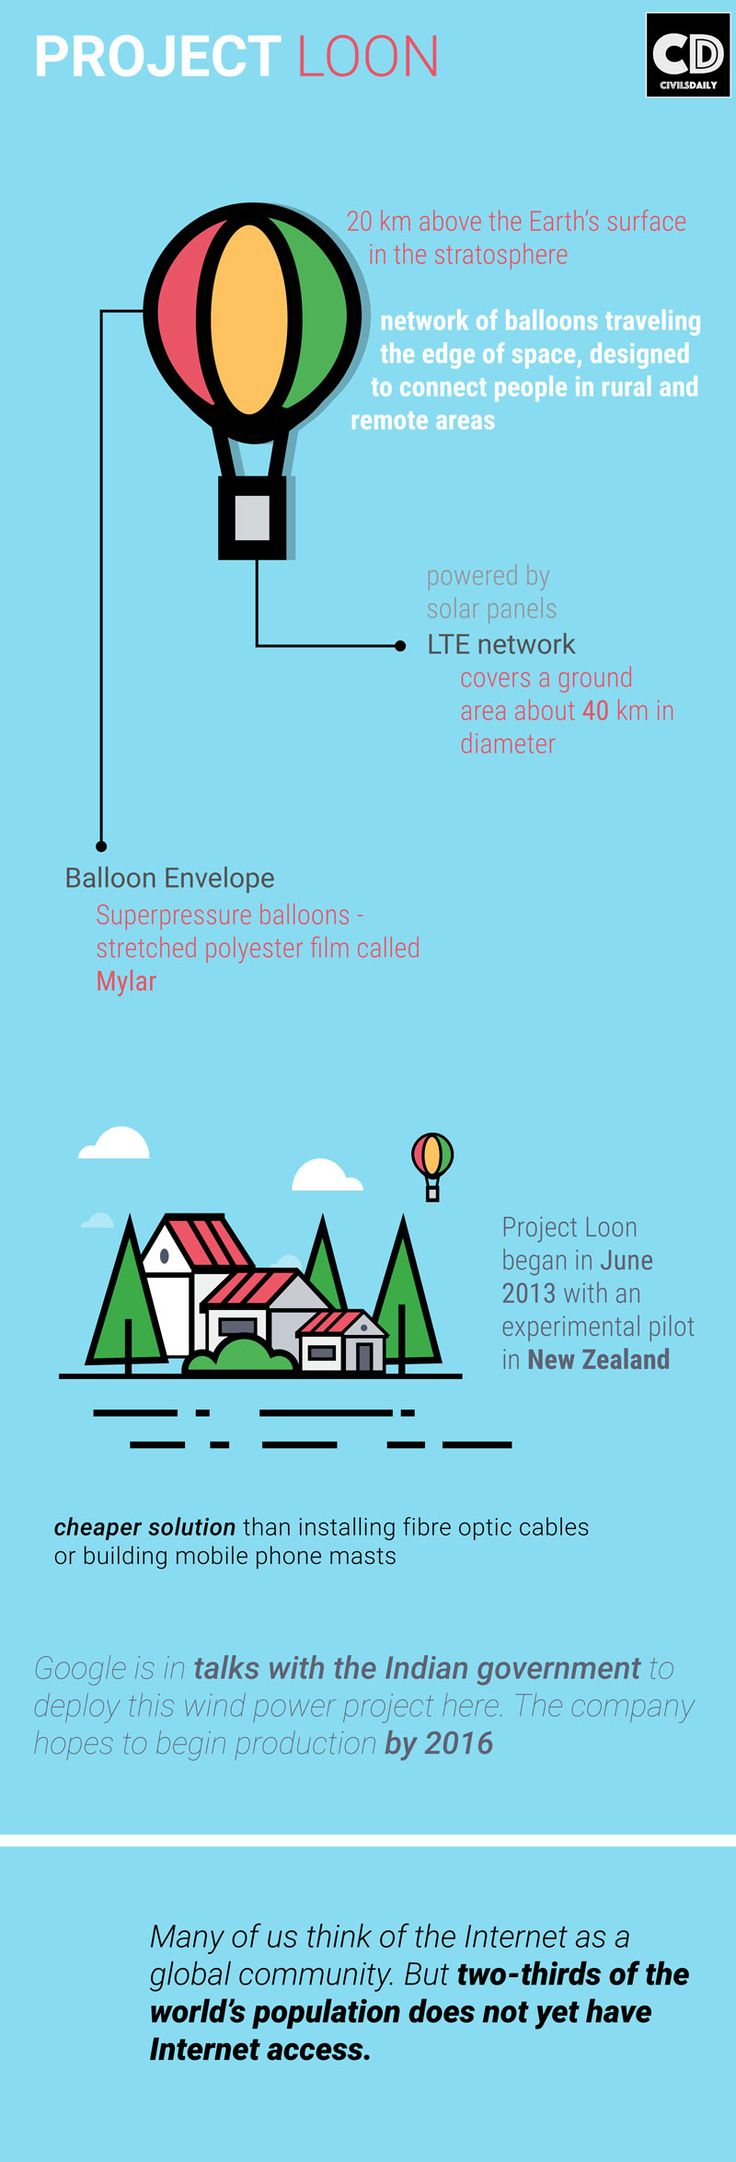 Google's Project Loon Balloon powered Projects